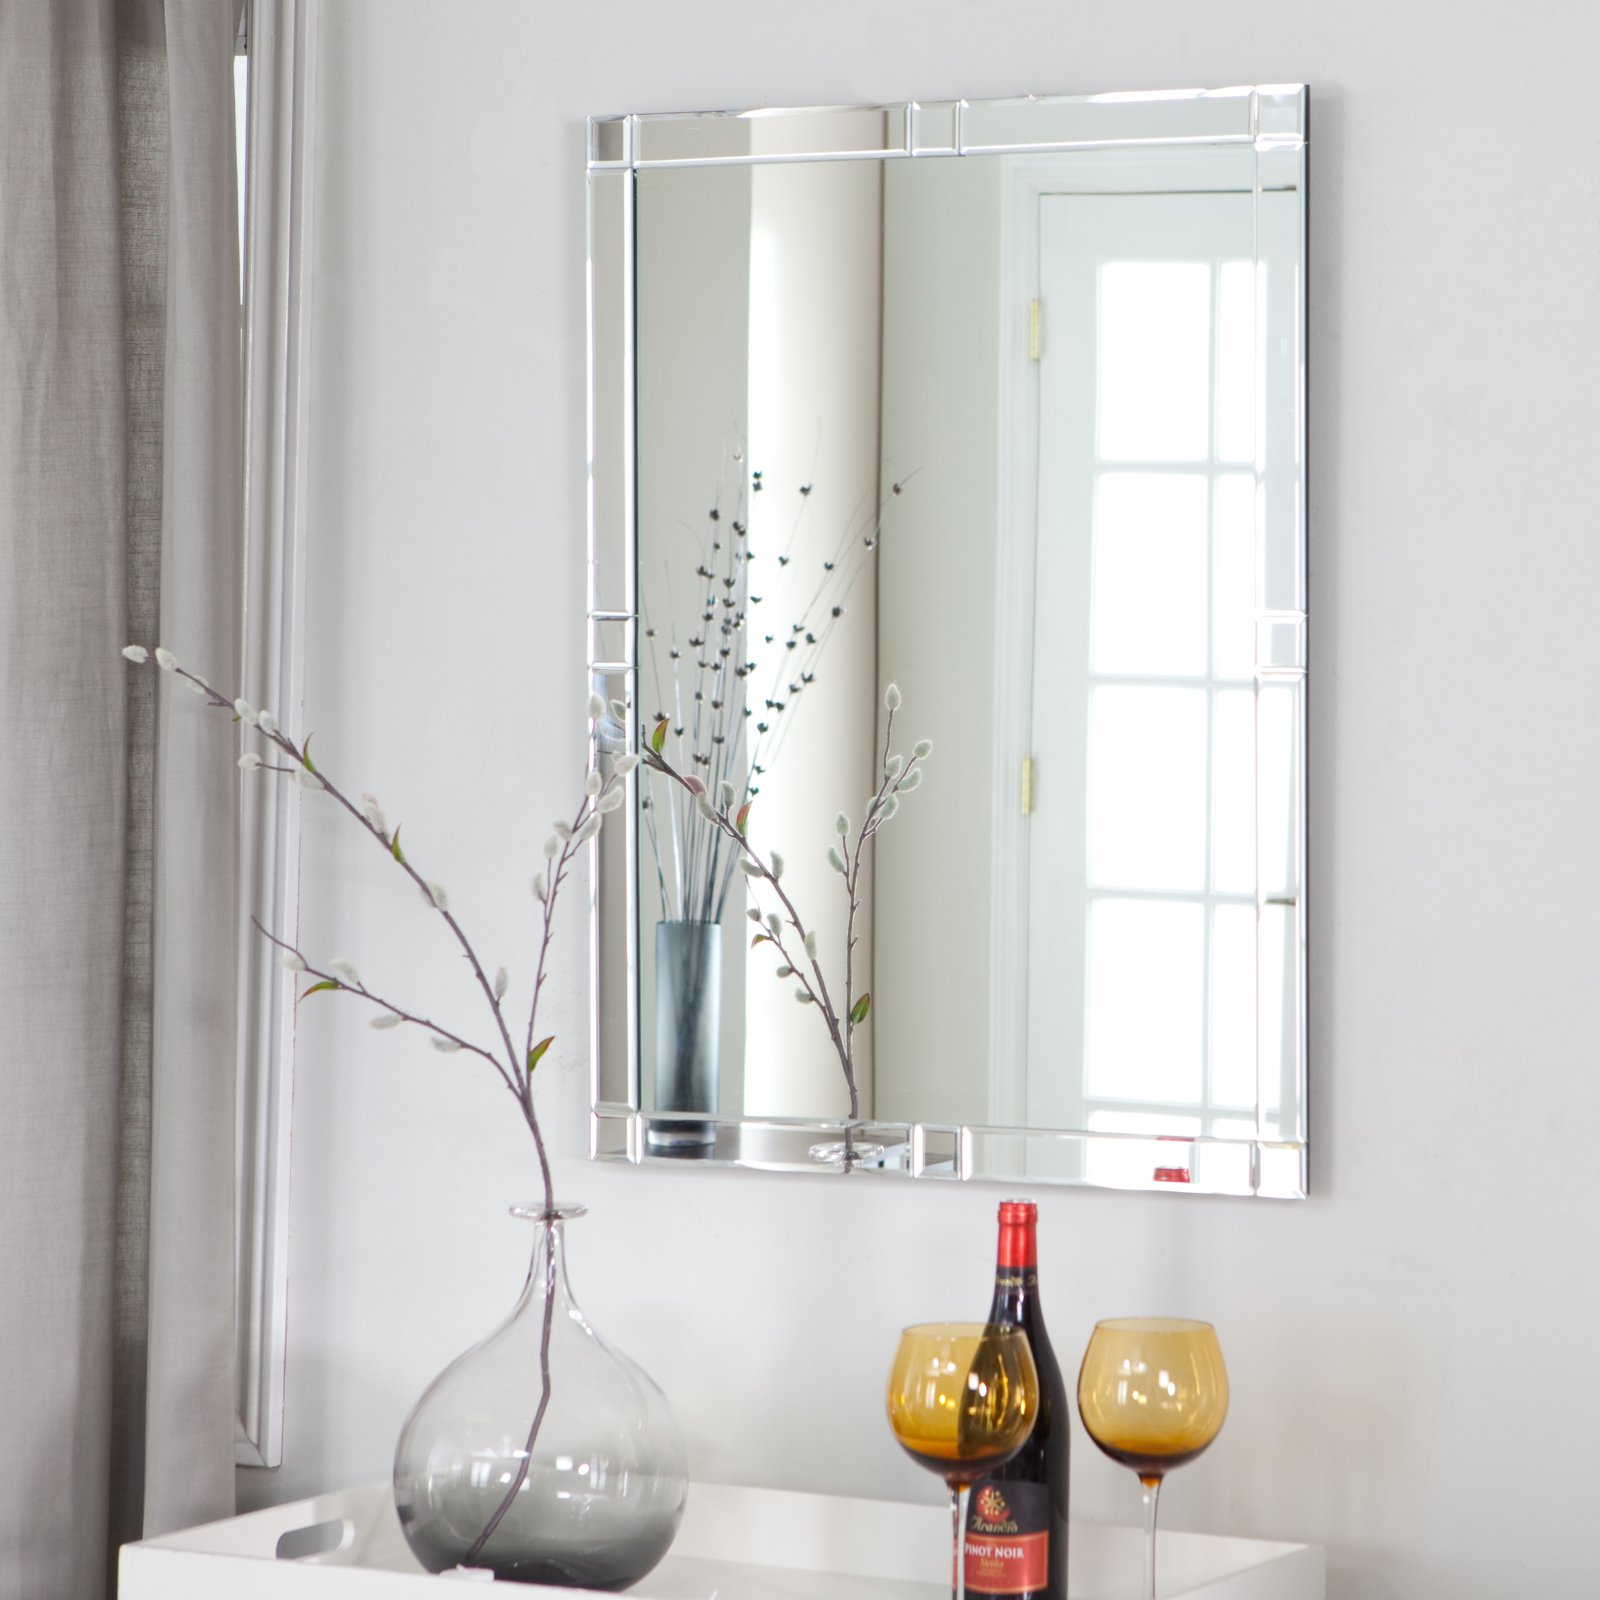 Décor Wonderland Frameless Beveled Karnia Mirror - 23.6W x 31.5H in.